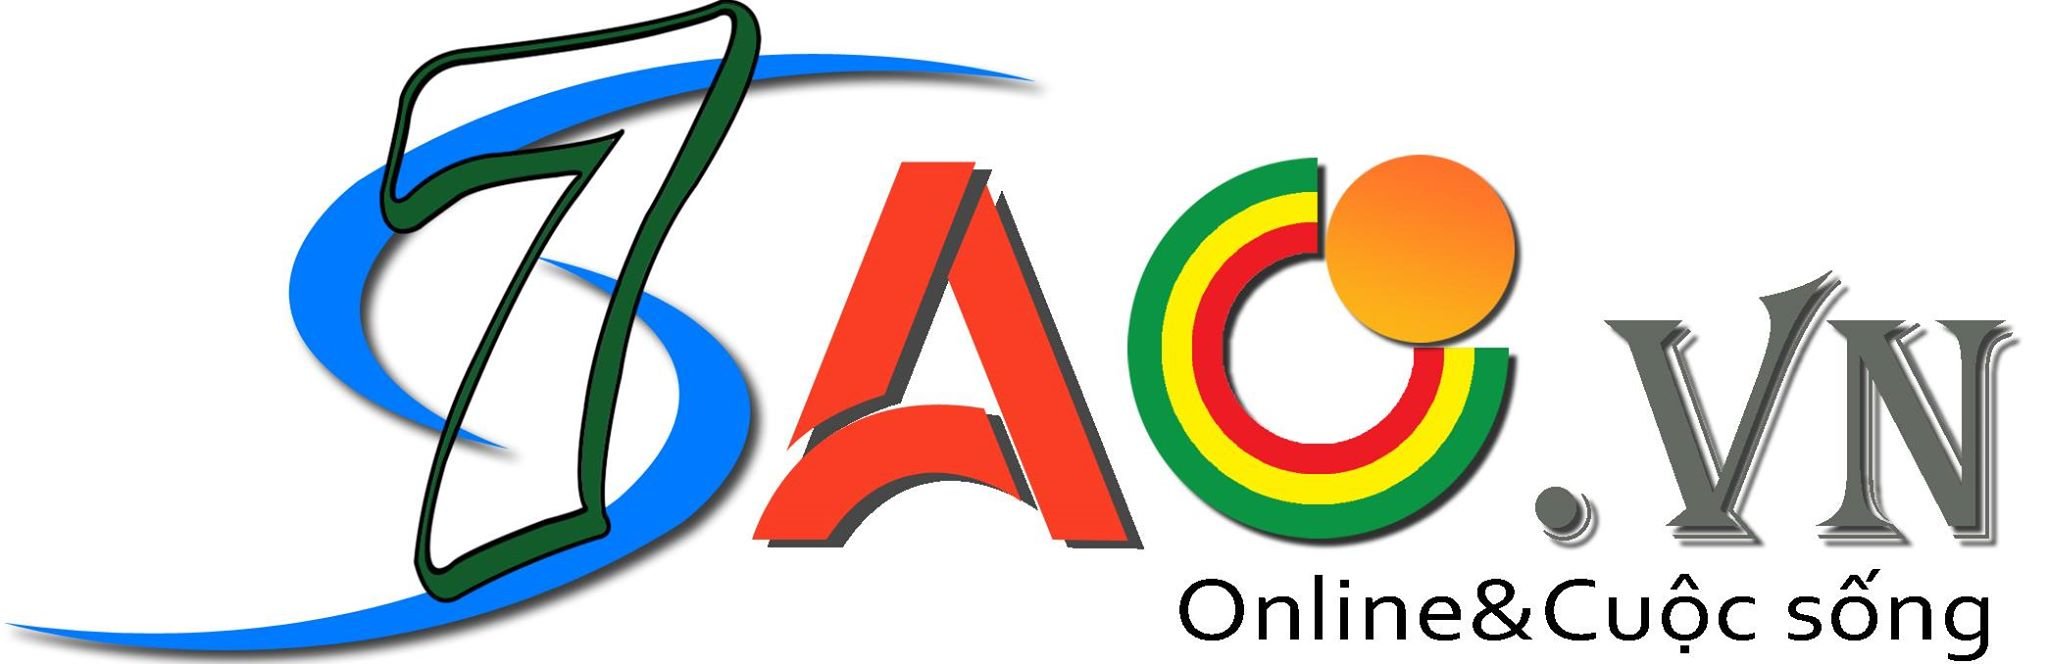 Website http://7sac.vn